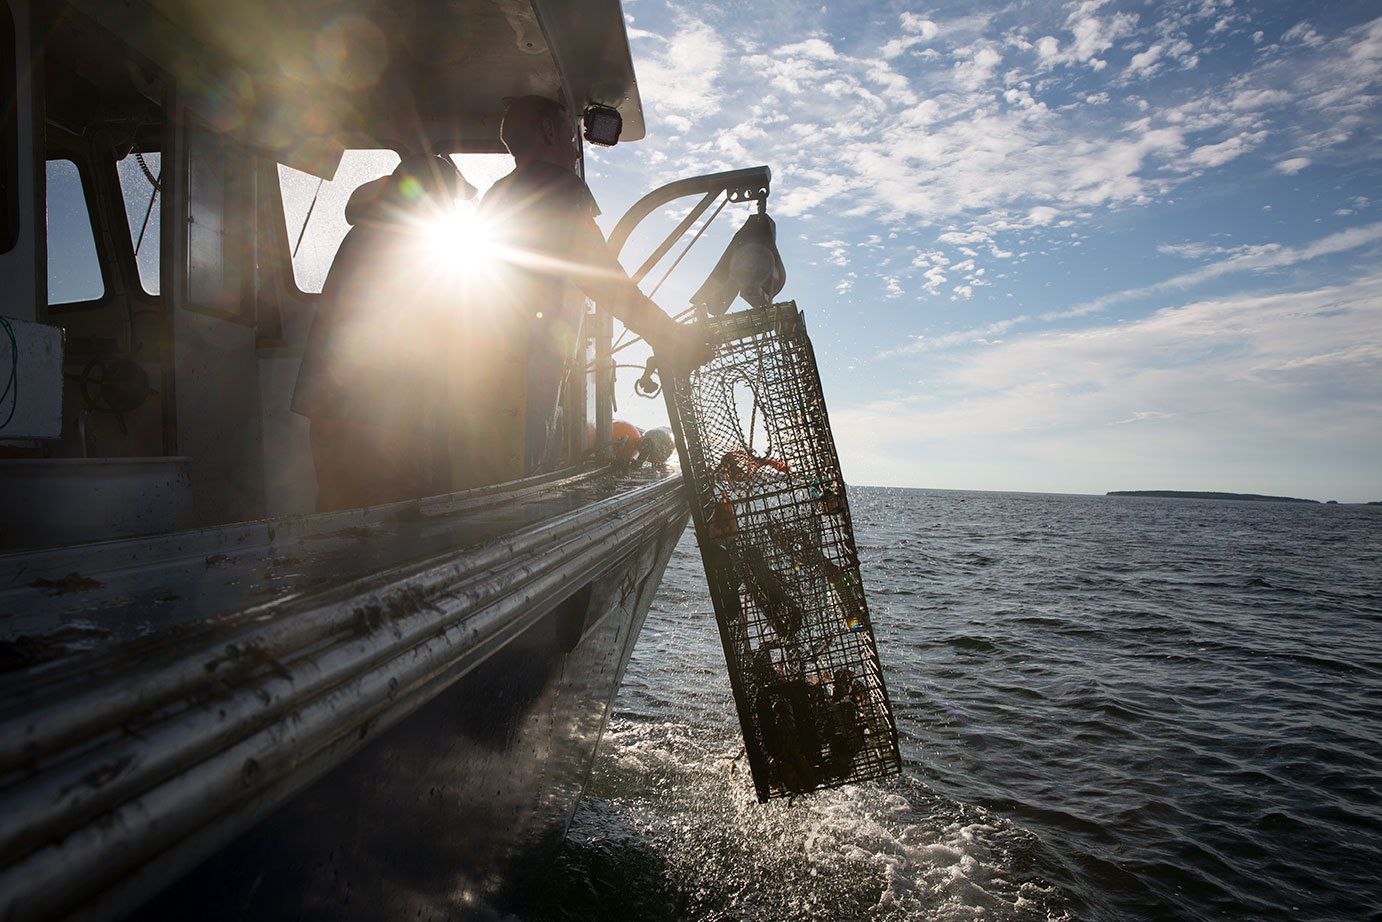 Maine Lobster Industry Stays With Weber Shandwick After Extensive Review